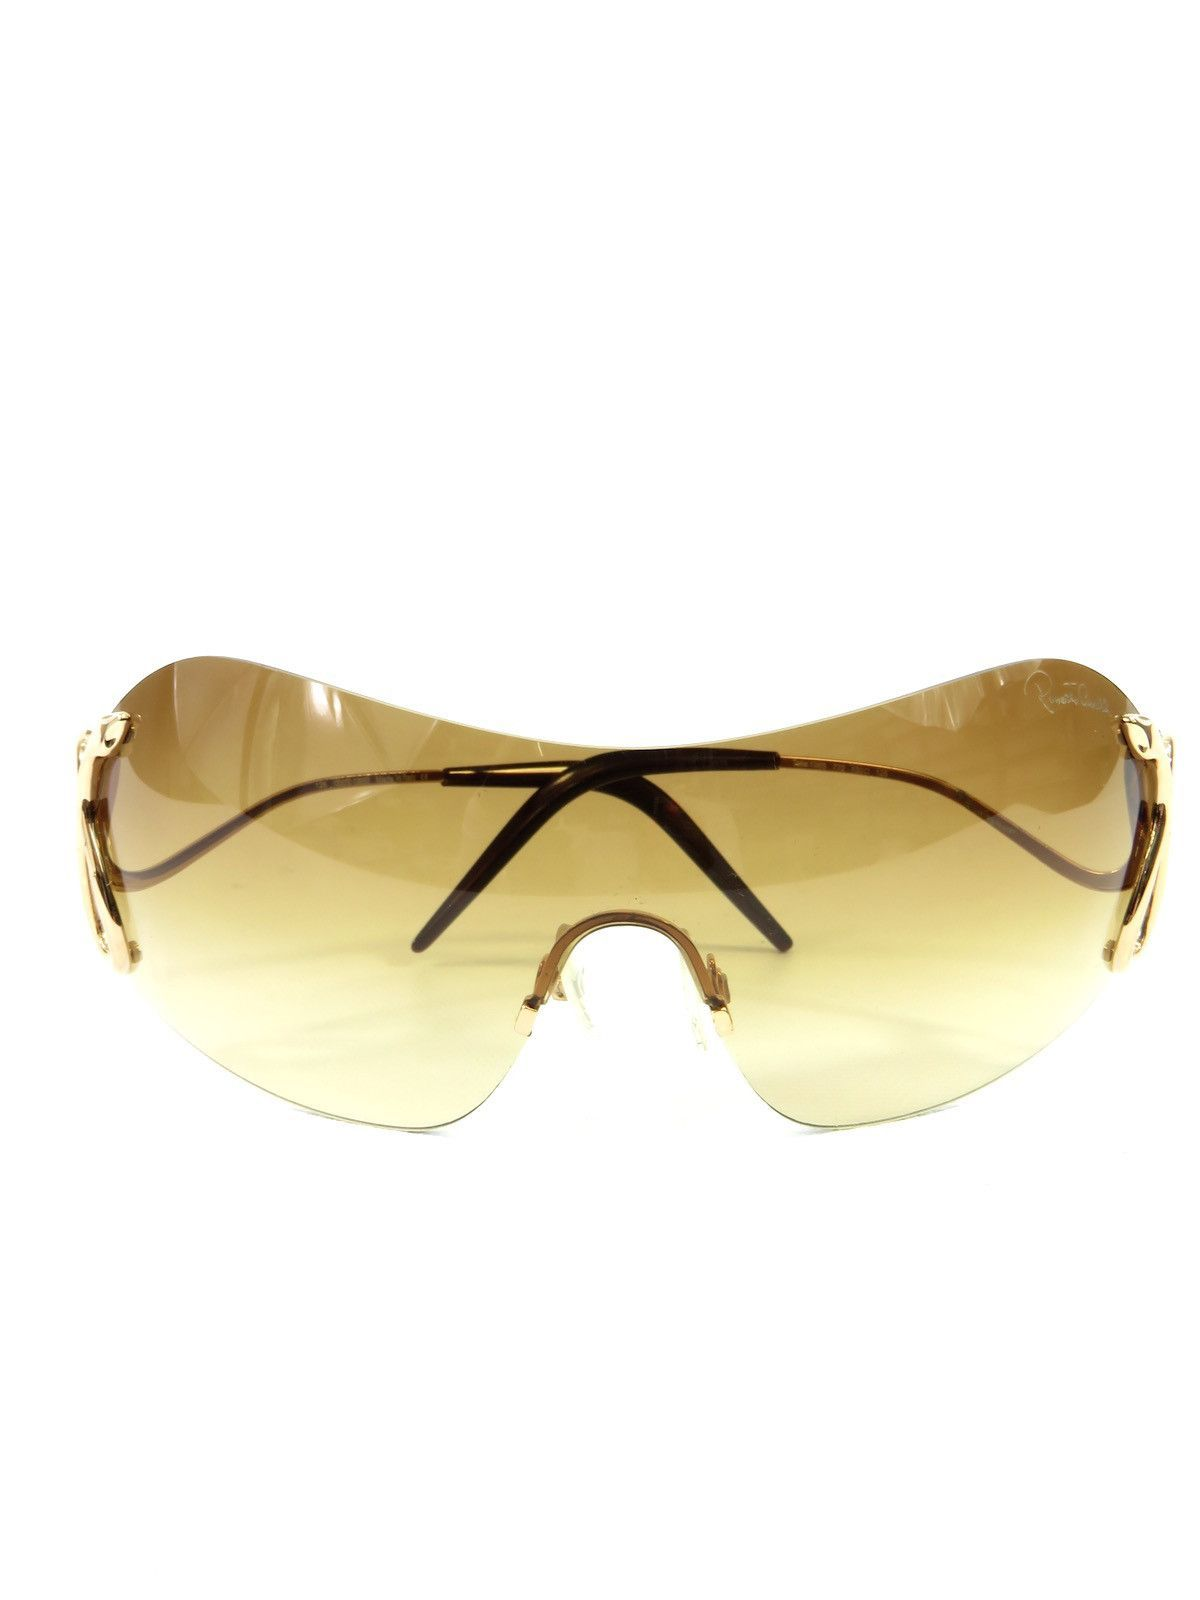 6c5a20e8191b ROBERTO CAVALLI Women Gold Snake Beige Gradient Frameless Shield Sunglasses